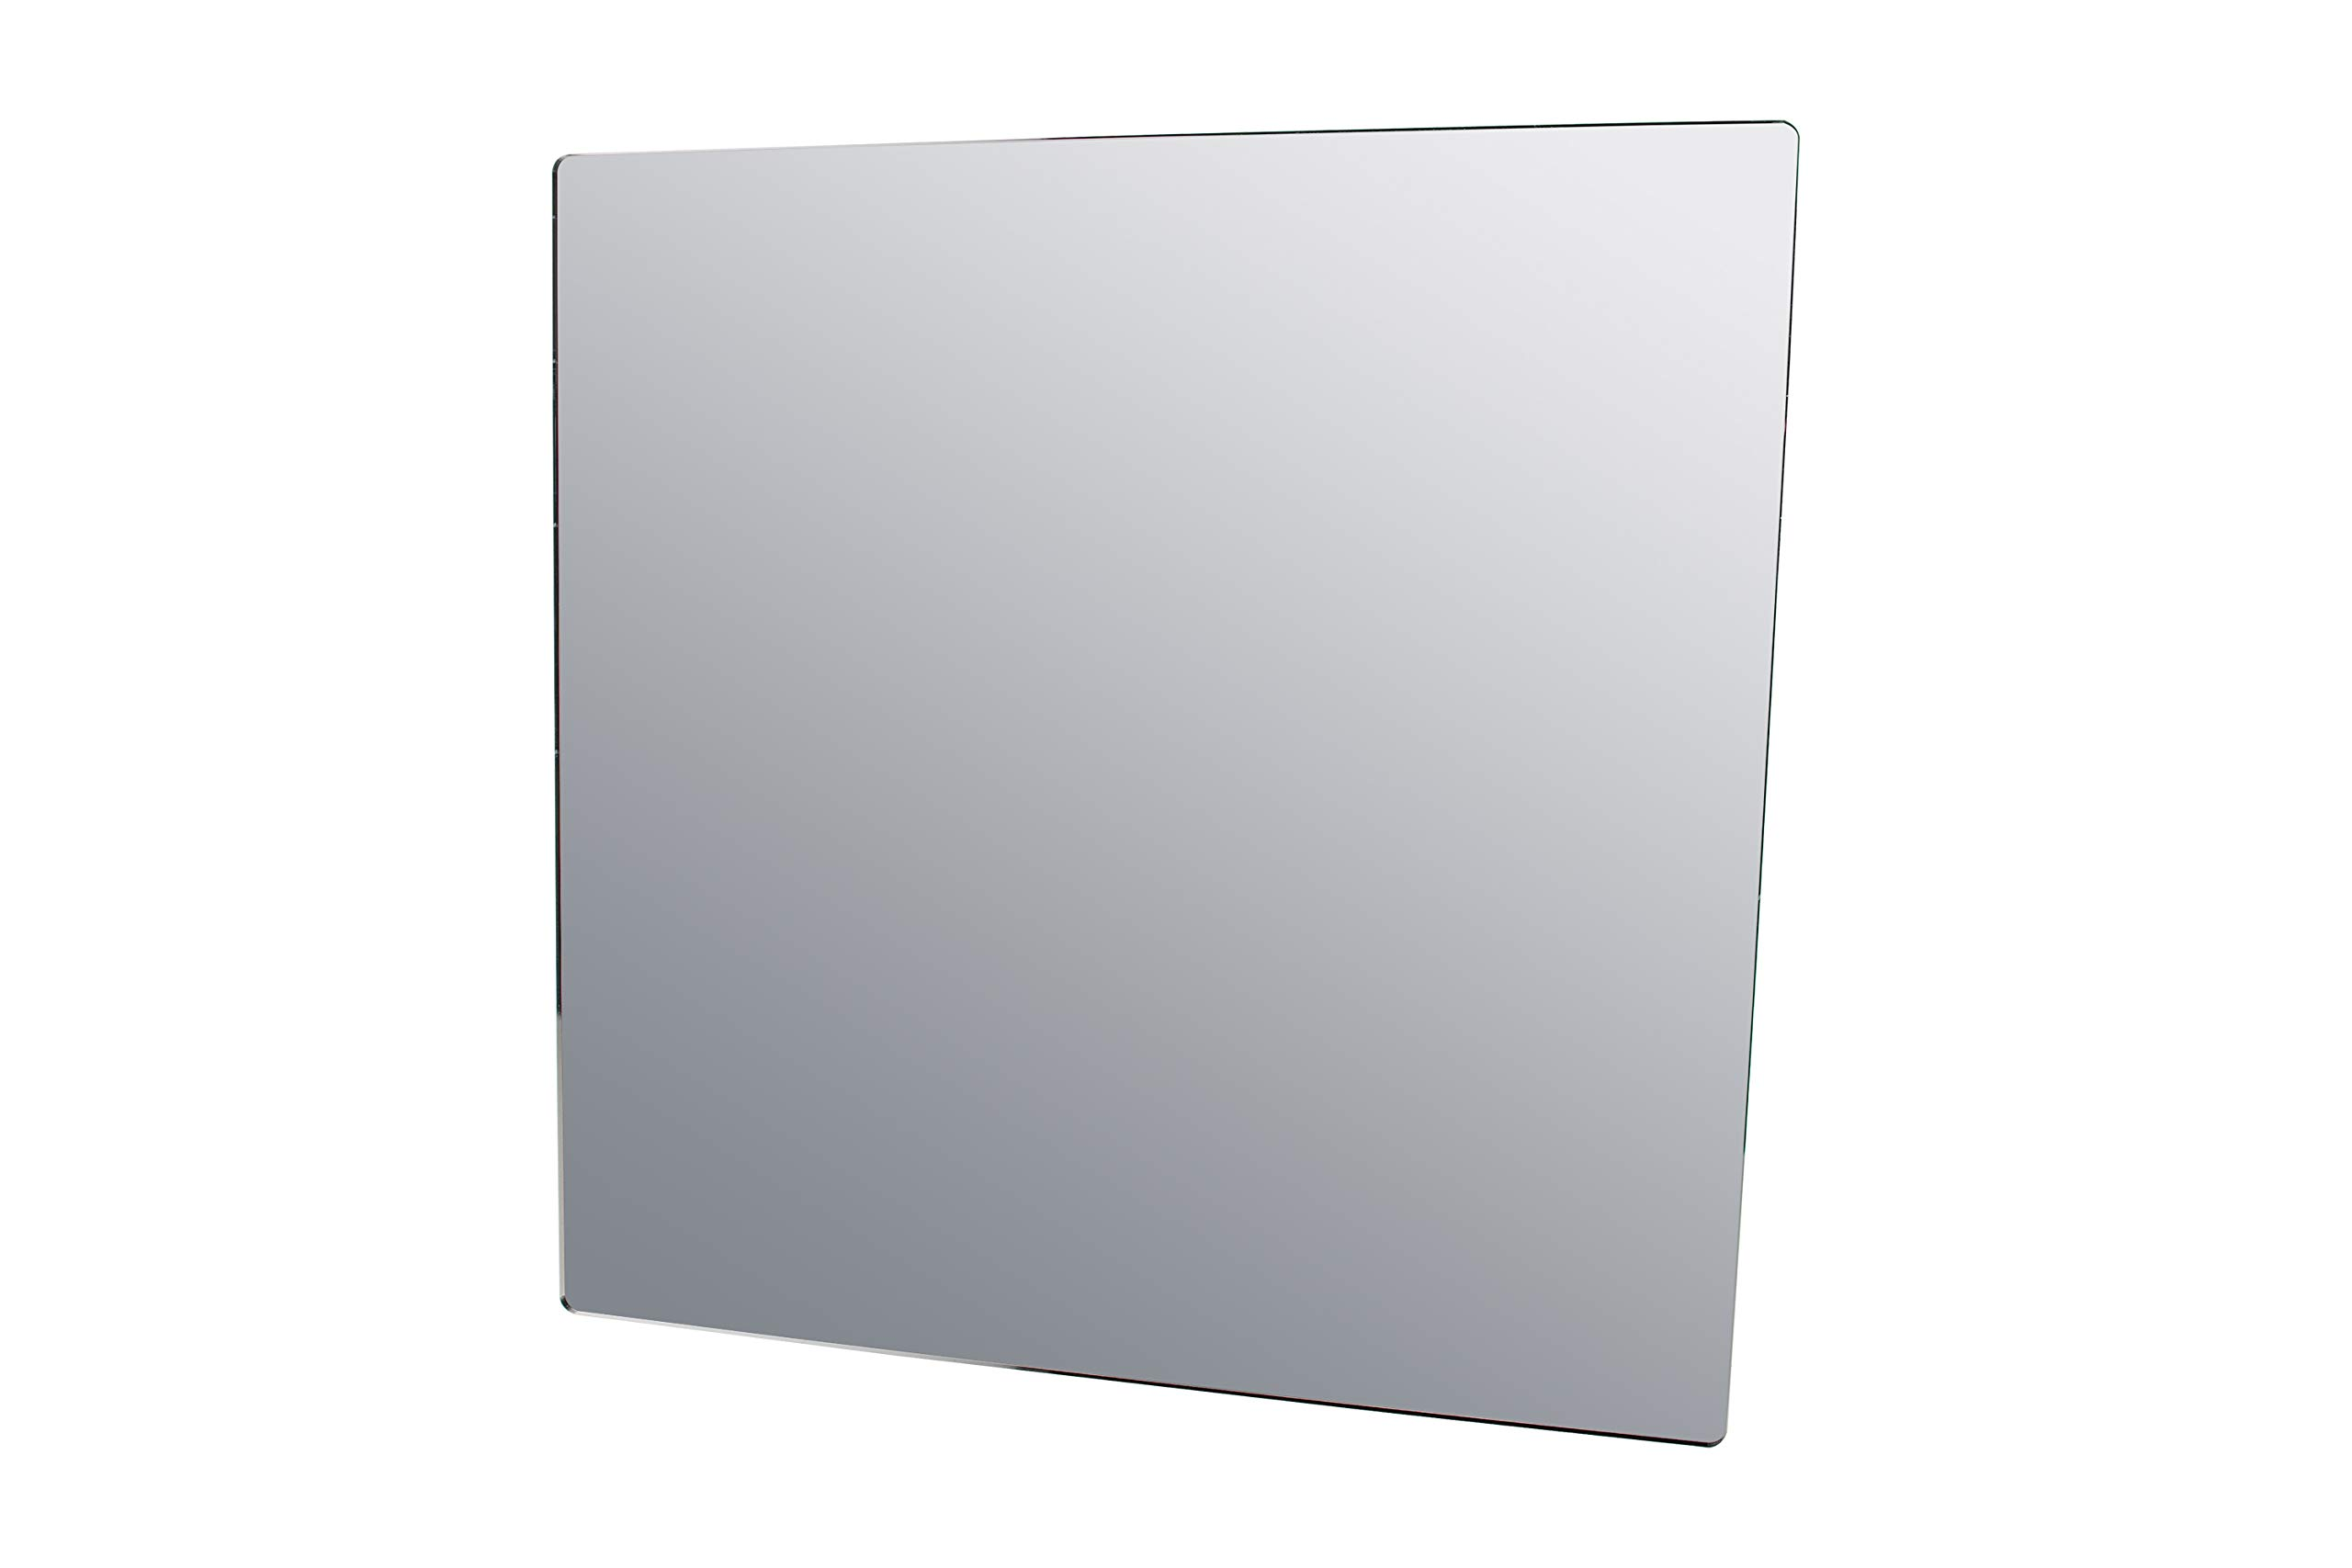 Marketing Holders Mirror Sheet Camping Daycare Gym Restrooms Speech Therapy Jewelry Makeup Mirror 24'' w x 24'' h by Marketing Holders